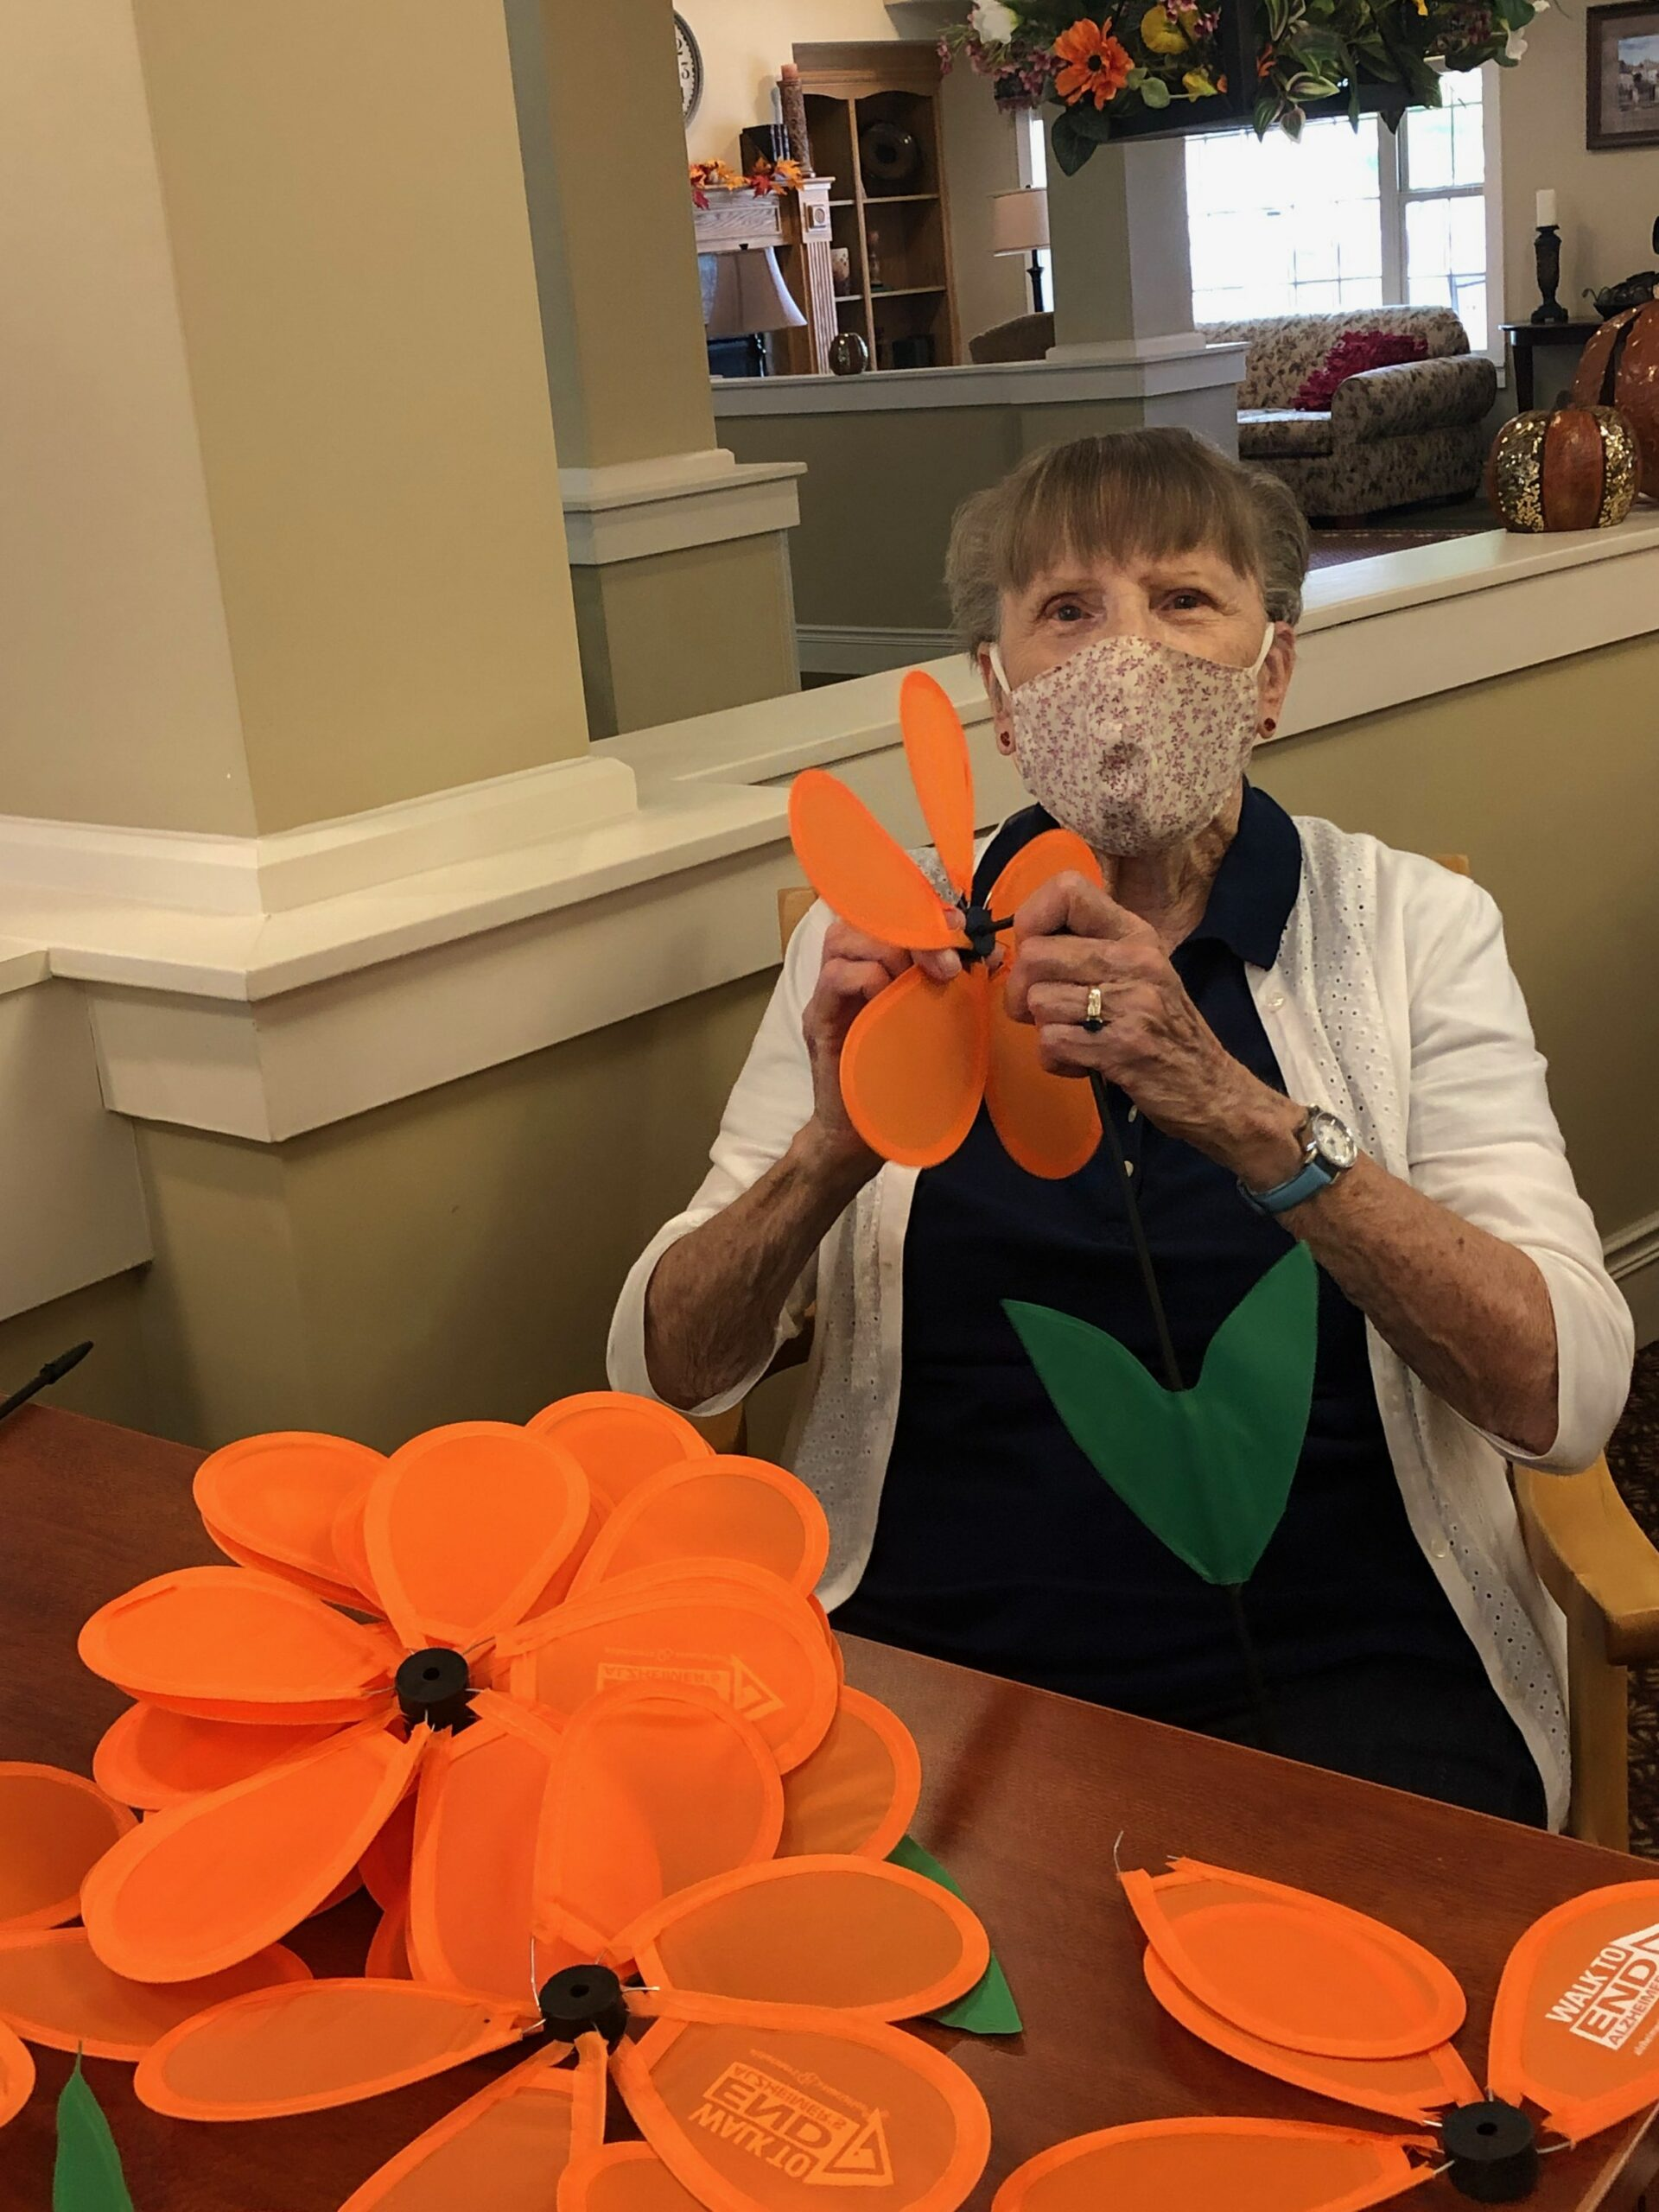 Pat loves to help and had a lot of fun putting together the Alzheimer's flowers for our walk next week